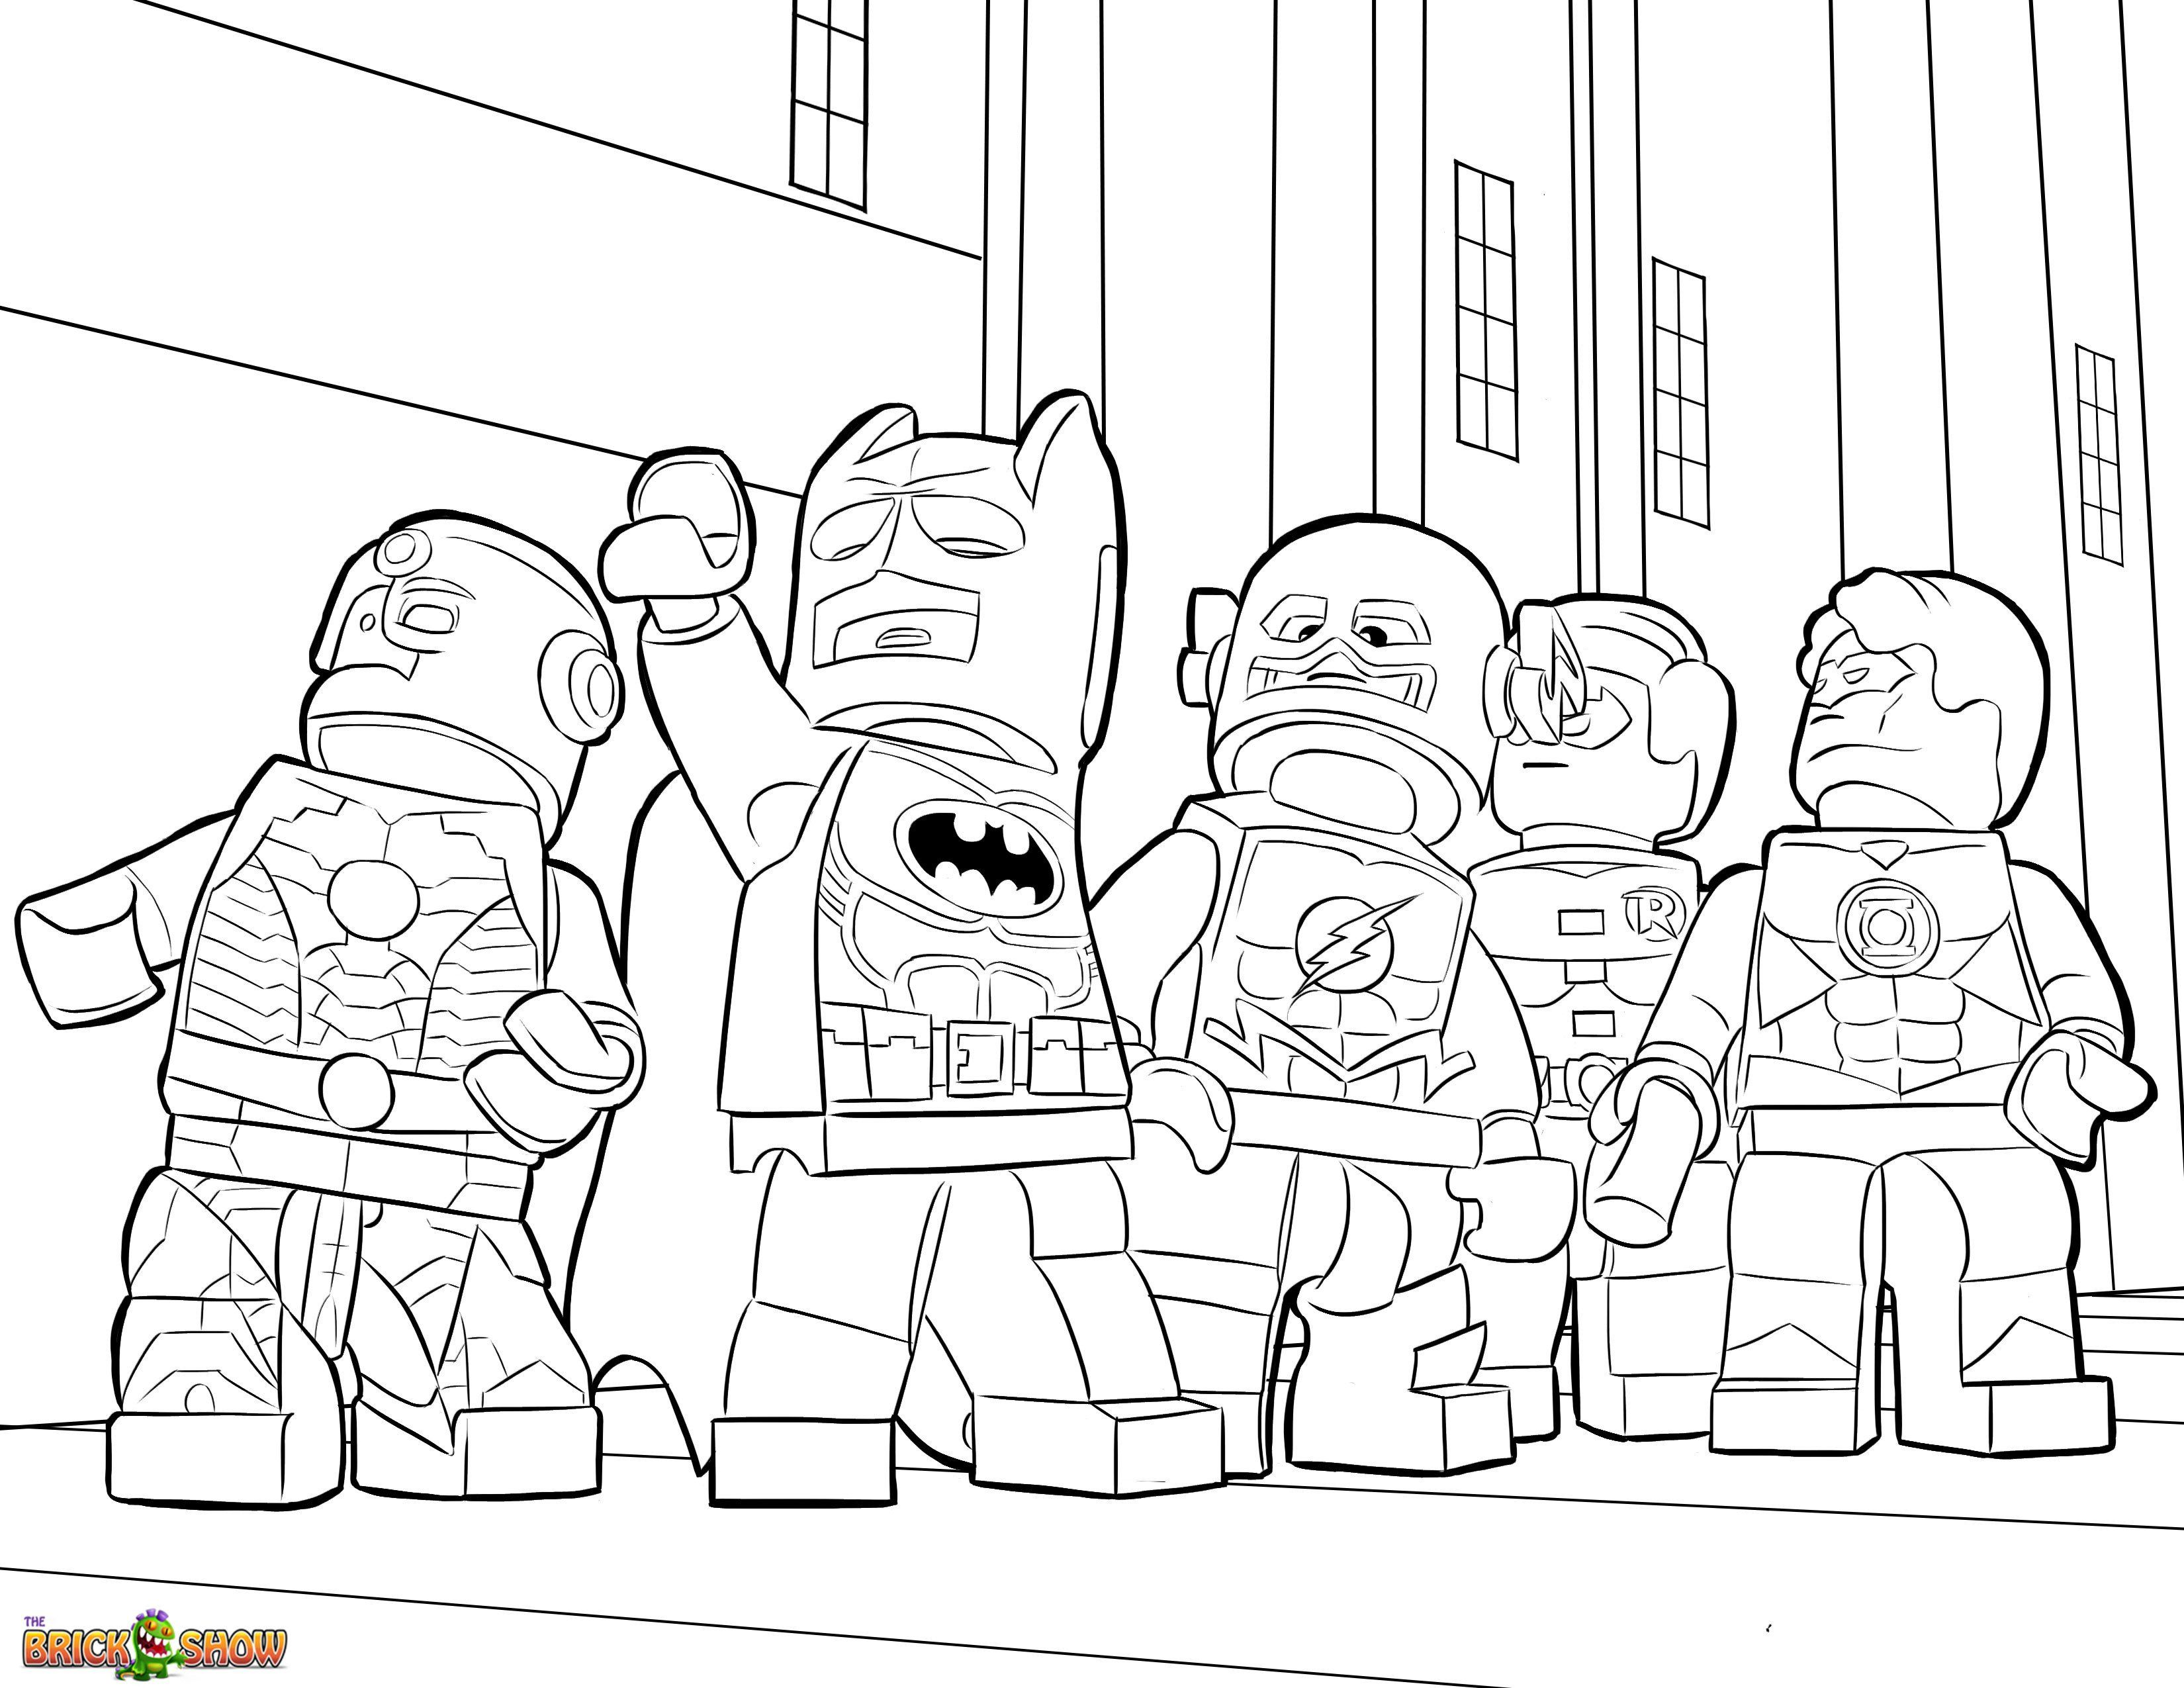 Justice League Coloring Pages Awesome Coloring Pages Lego Movie Coloring Pages Patinsudo Lego Movie Coloring Pages Lego Coloring Pages Superhero Coloring Pages